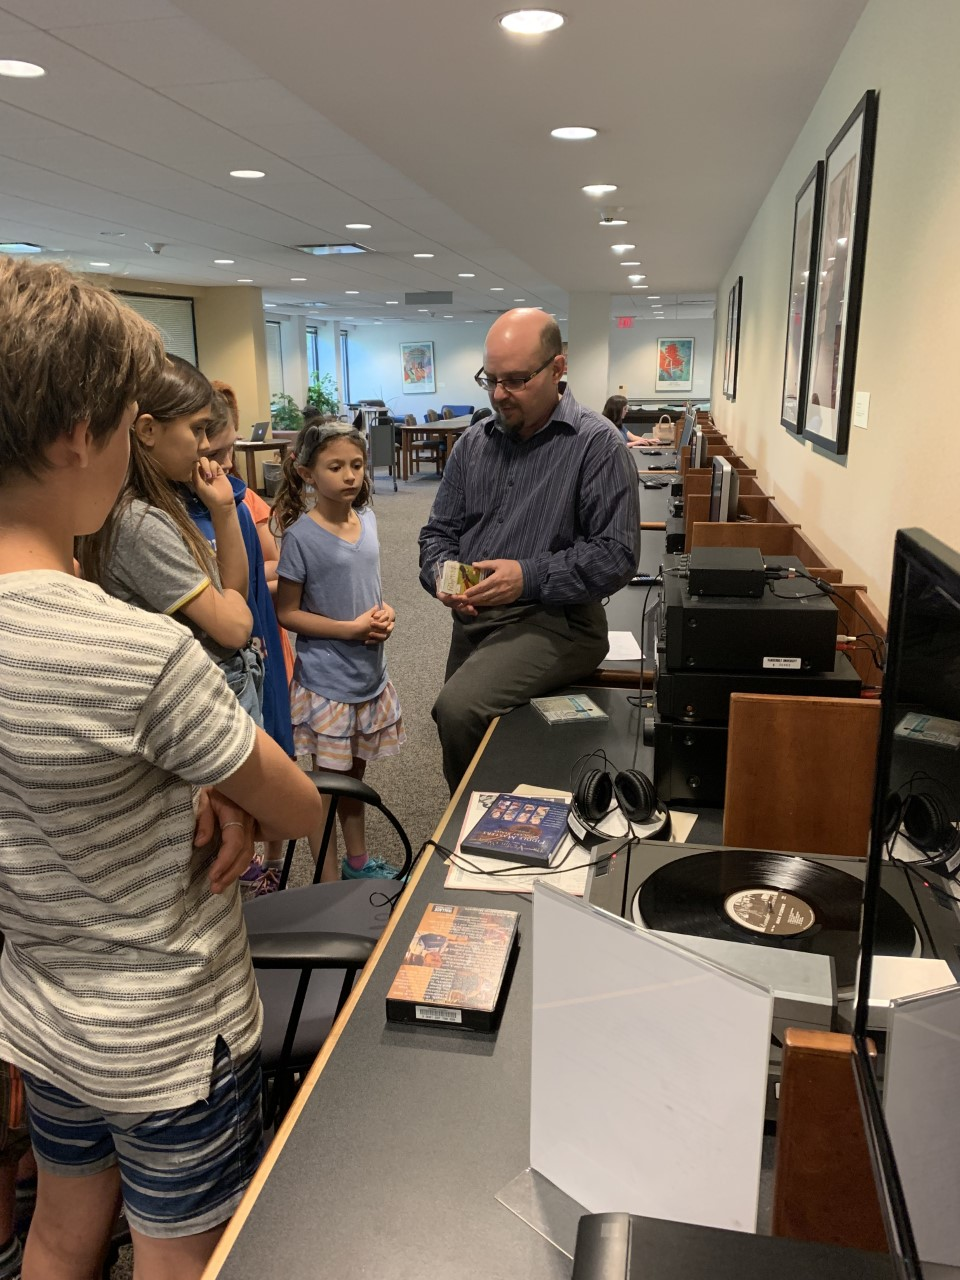 Holling Smith-Borne shows Blair Academy fiddle students how to use audiovisual equipment in the Music Library, April, 2018.